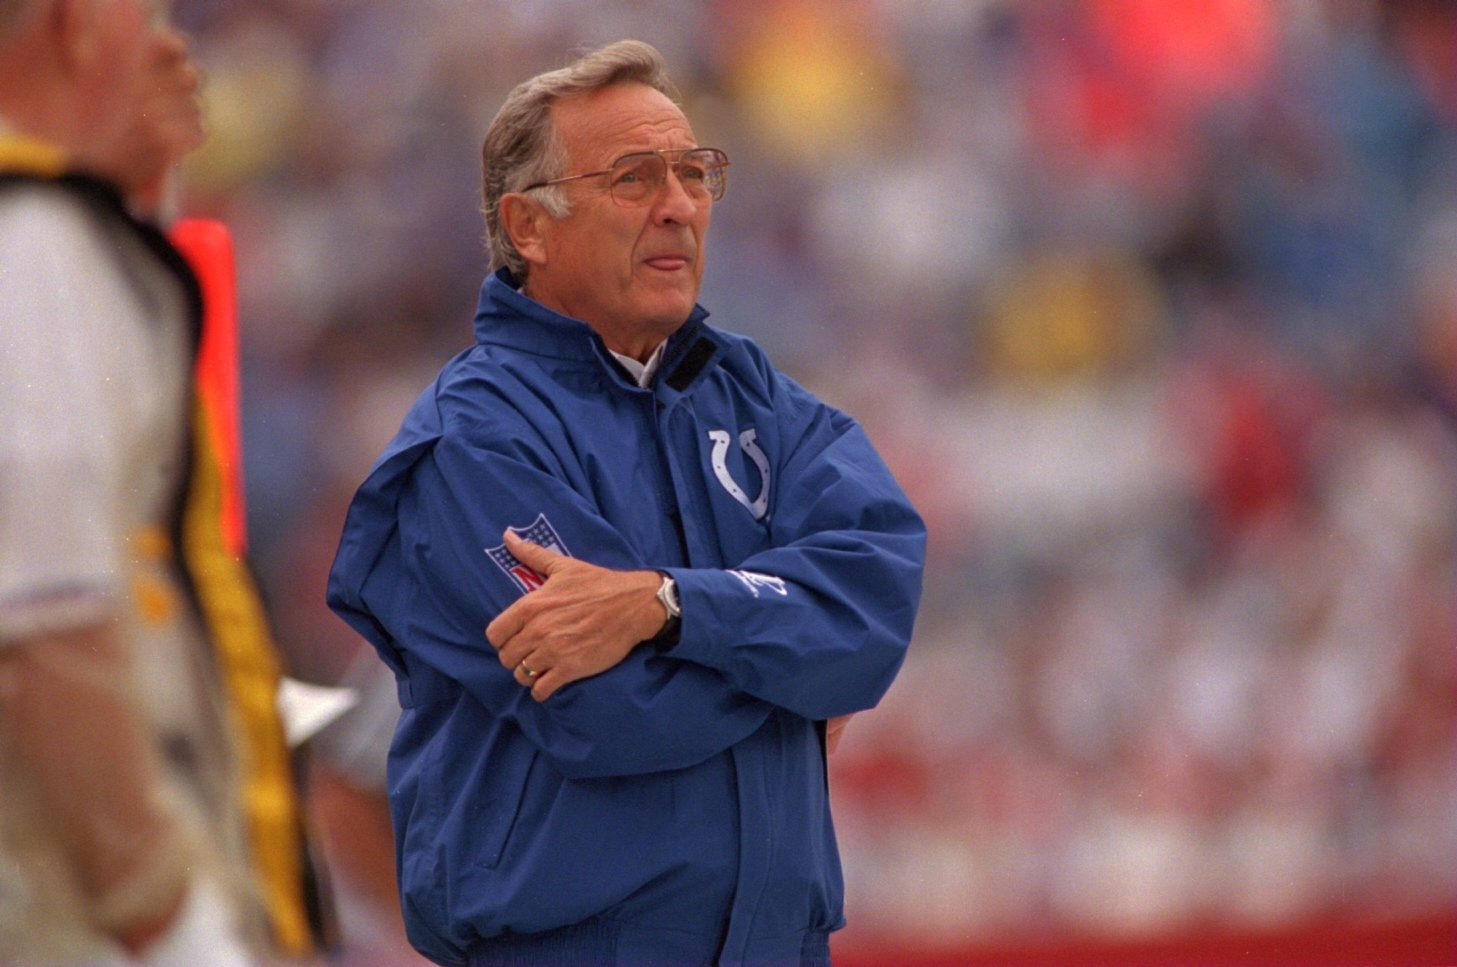 Ted Marchibroda, pictured as head coach of the Indianapolis Colts in 1995, looks on during a 20-14 loss to the Bills at then-Rich Stadium.